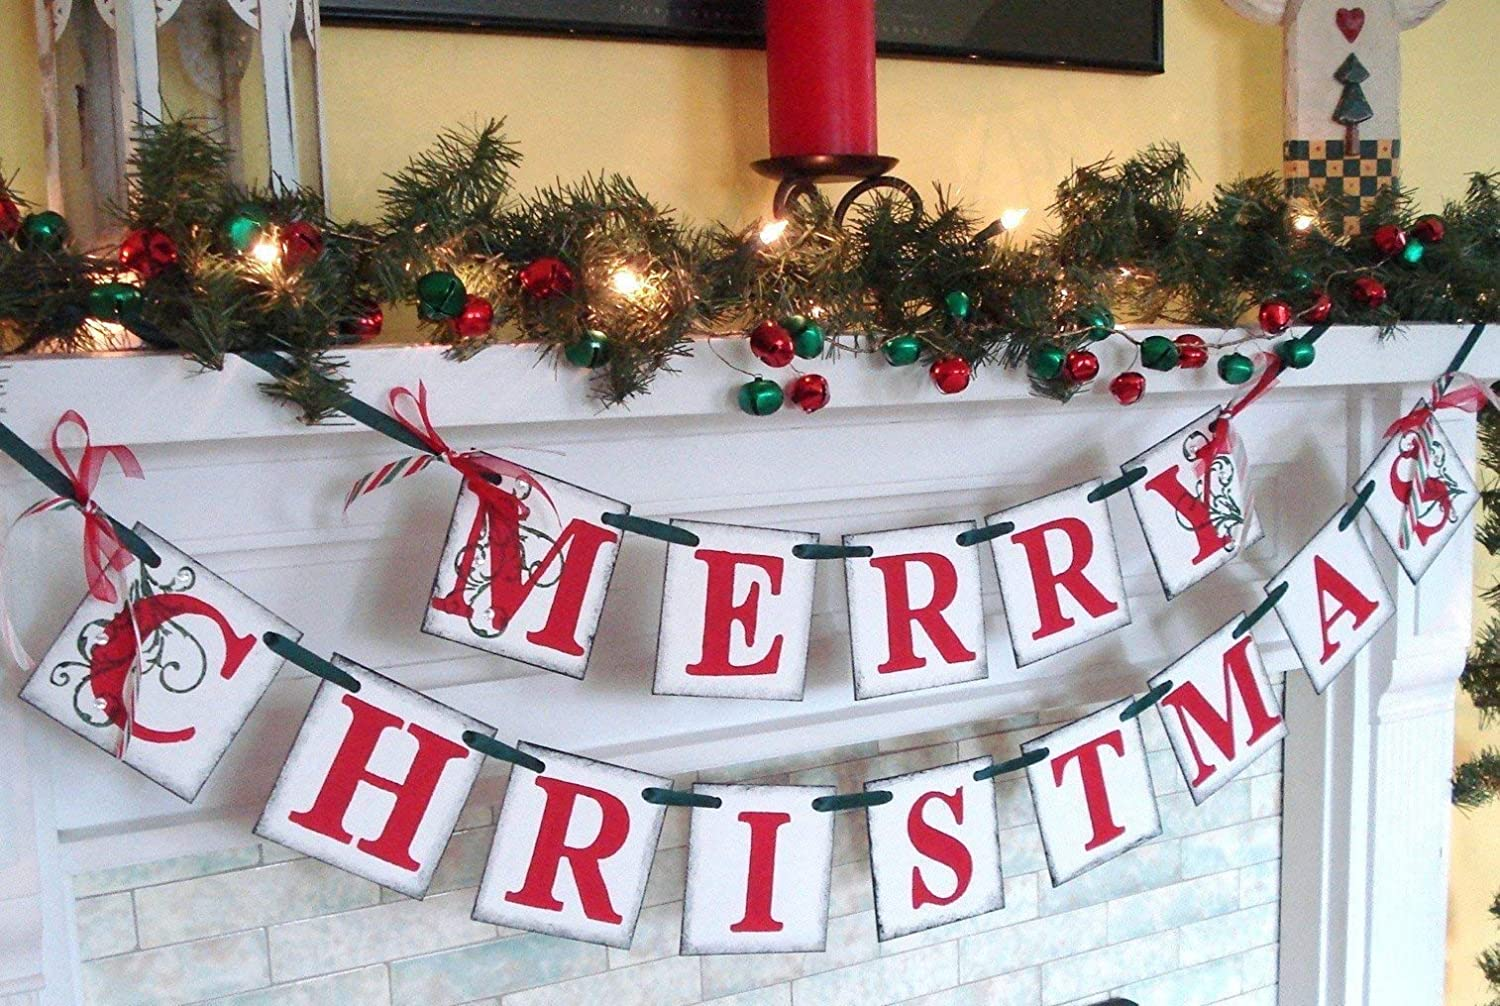 Christmas decorations//MERRY CHRISTMAS banner//Holiday Mantle Garland//Holiday Photo Banner//Vintage Inspired Holiday Banner//Christmas Banner